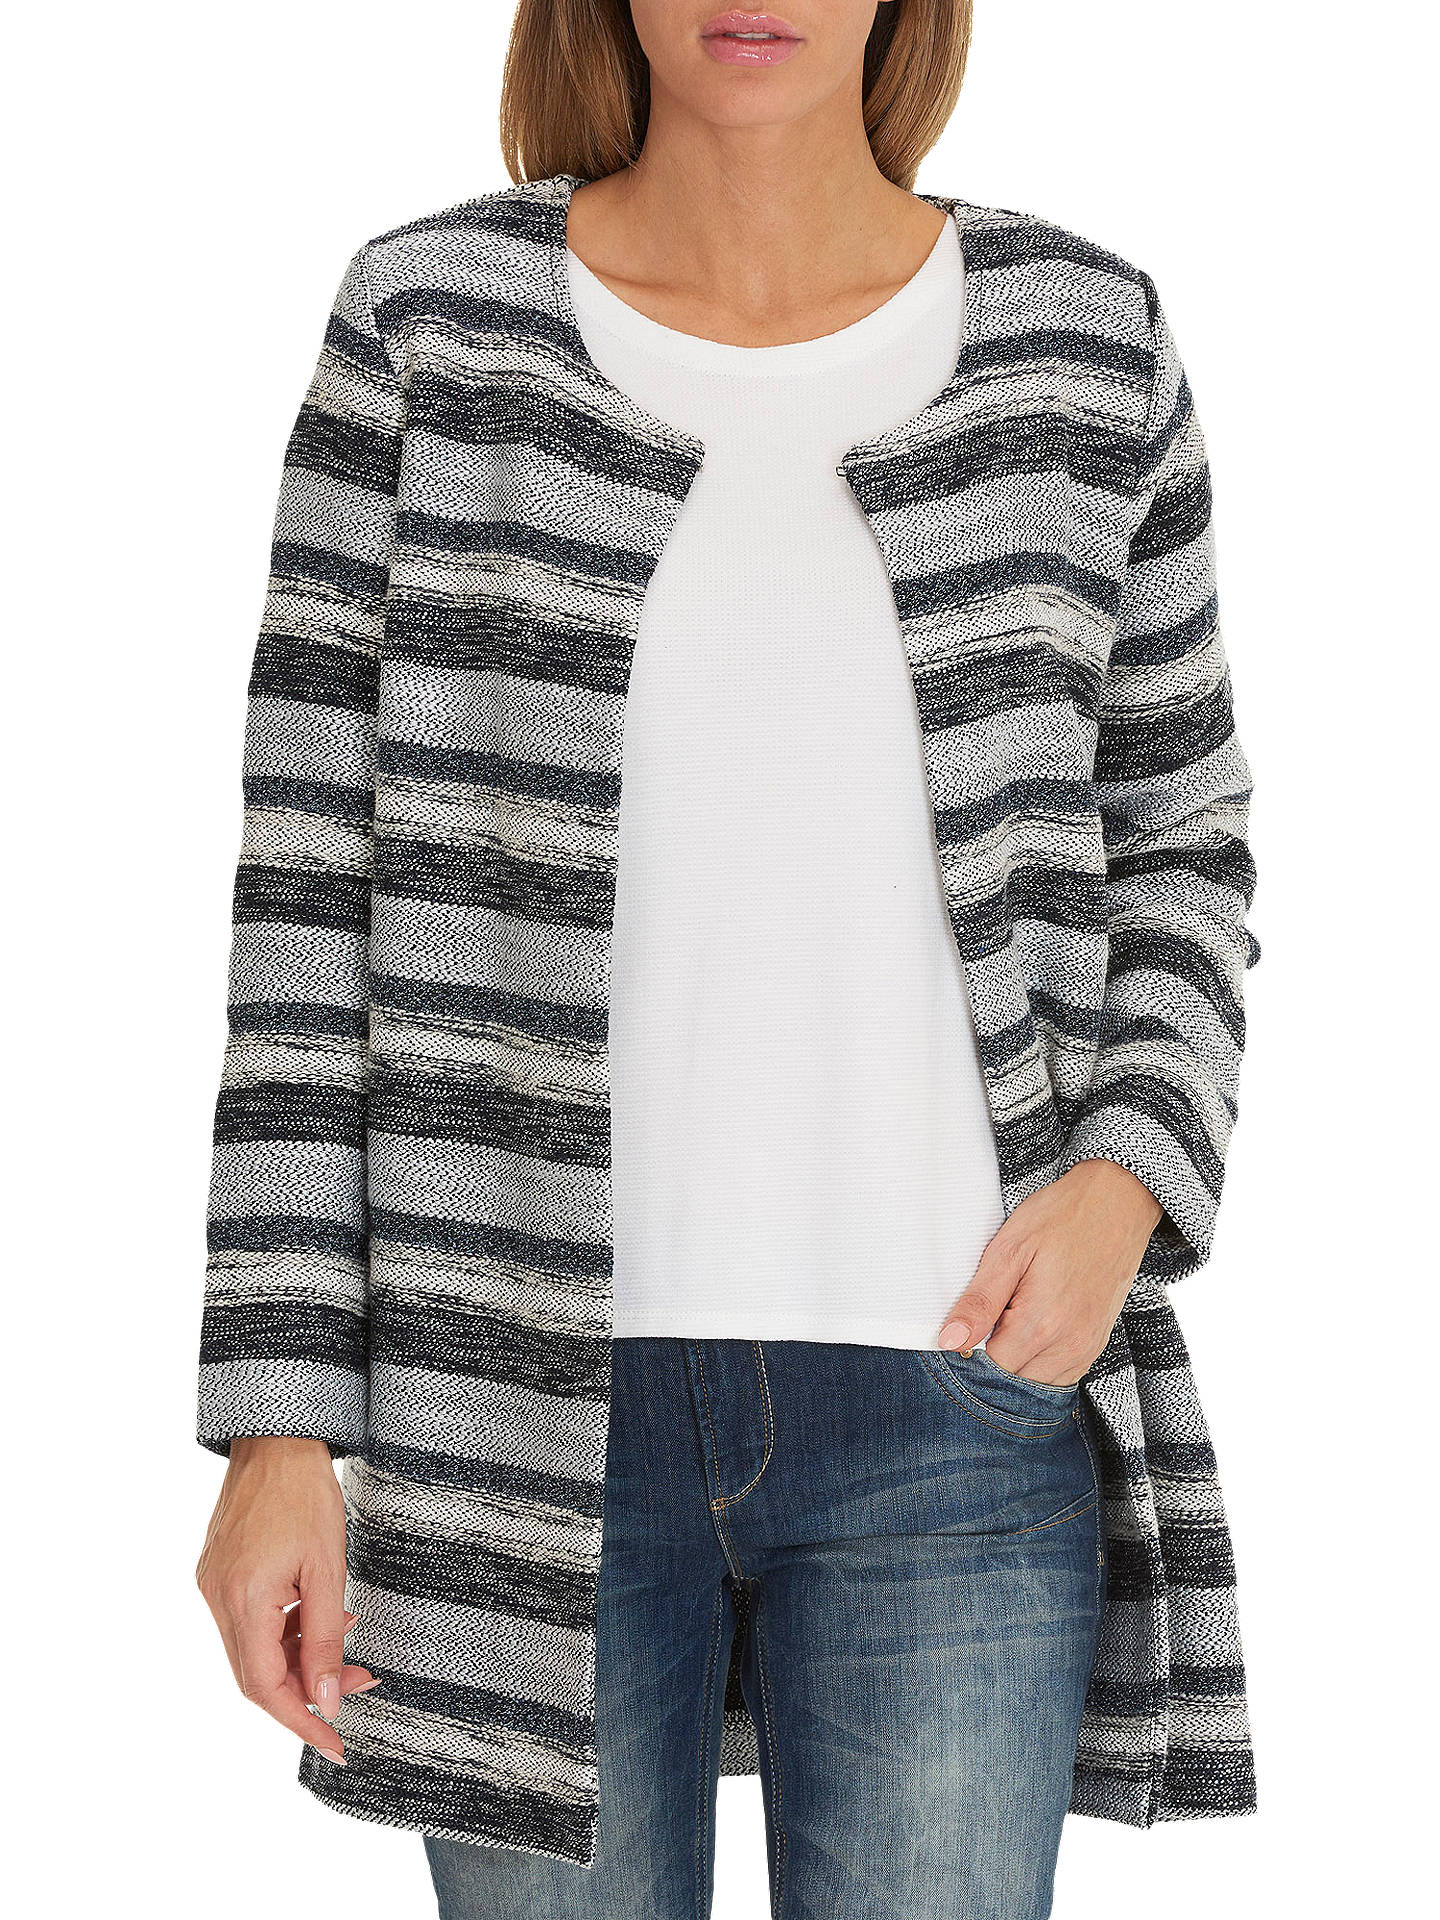 BuyBetty & Co. Unlined Jacket, Dark Blue/Grey, 10 Online at johnlewis.com